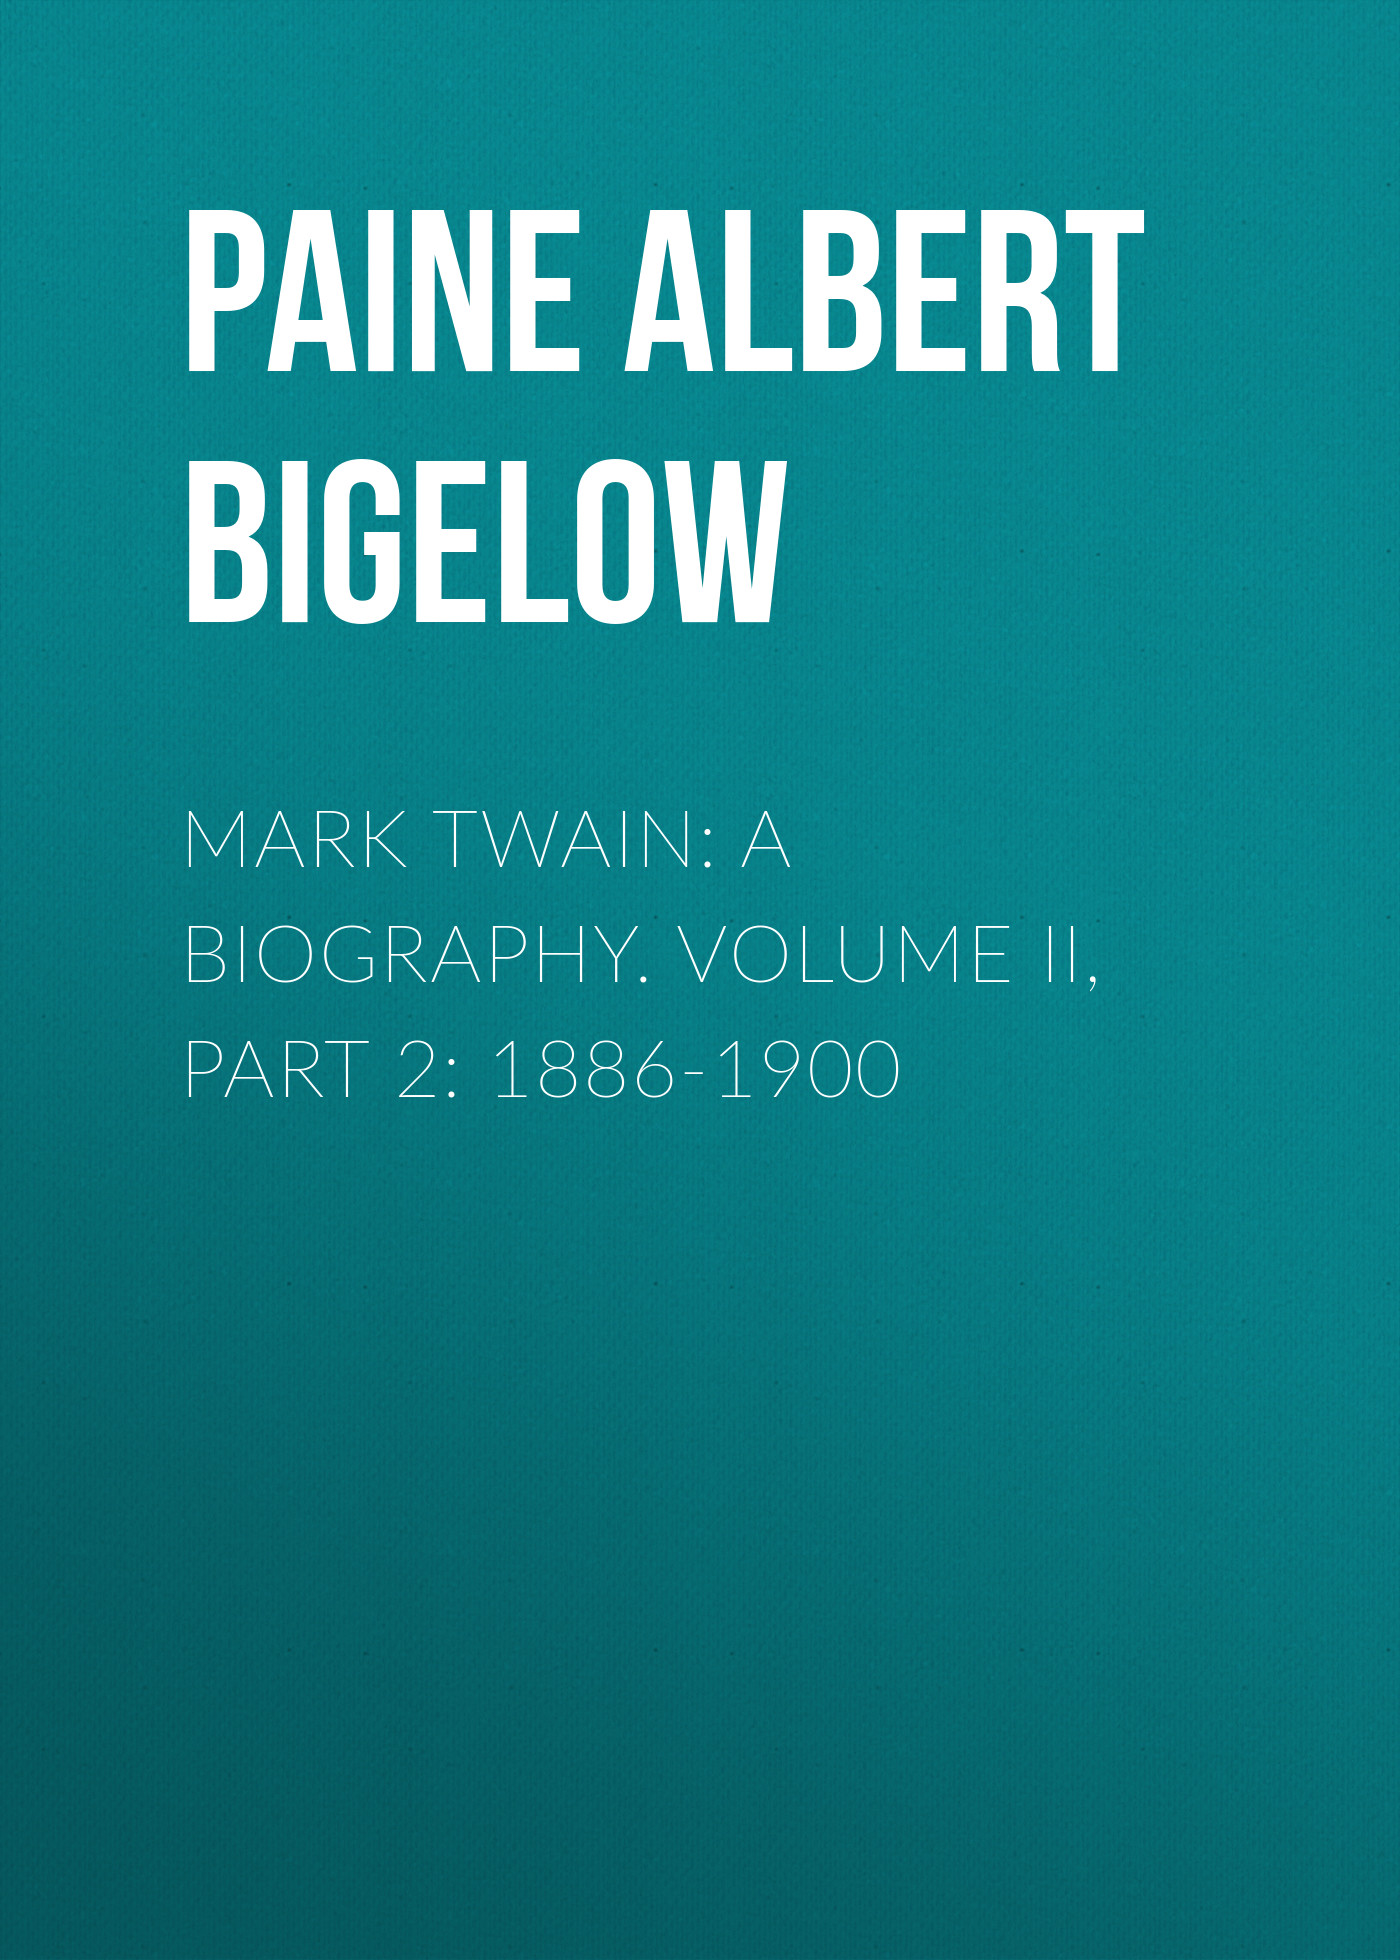 Paine Albert Bigelow Mark Twain: A Biography. Volume II, Part 2: 1886-1900 shania twain shania twain now 2 lp